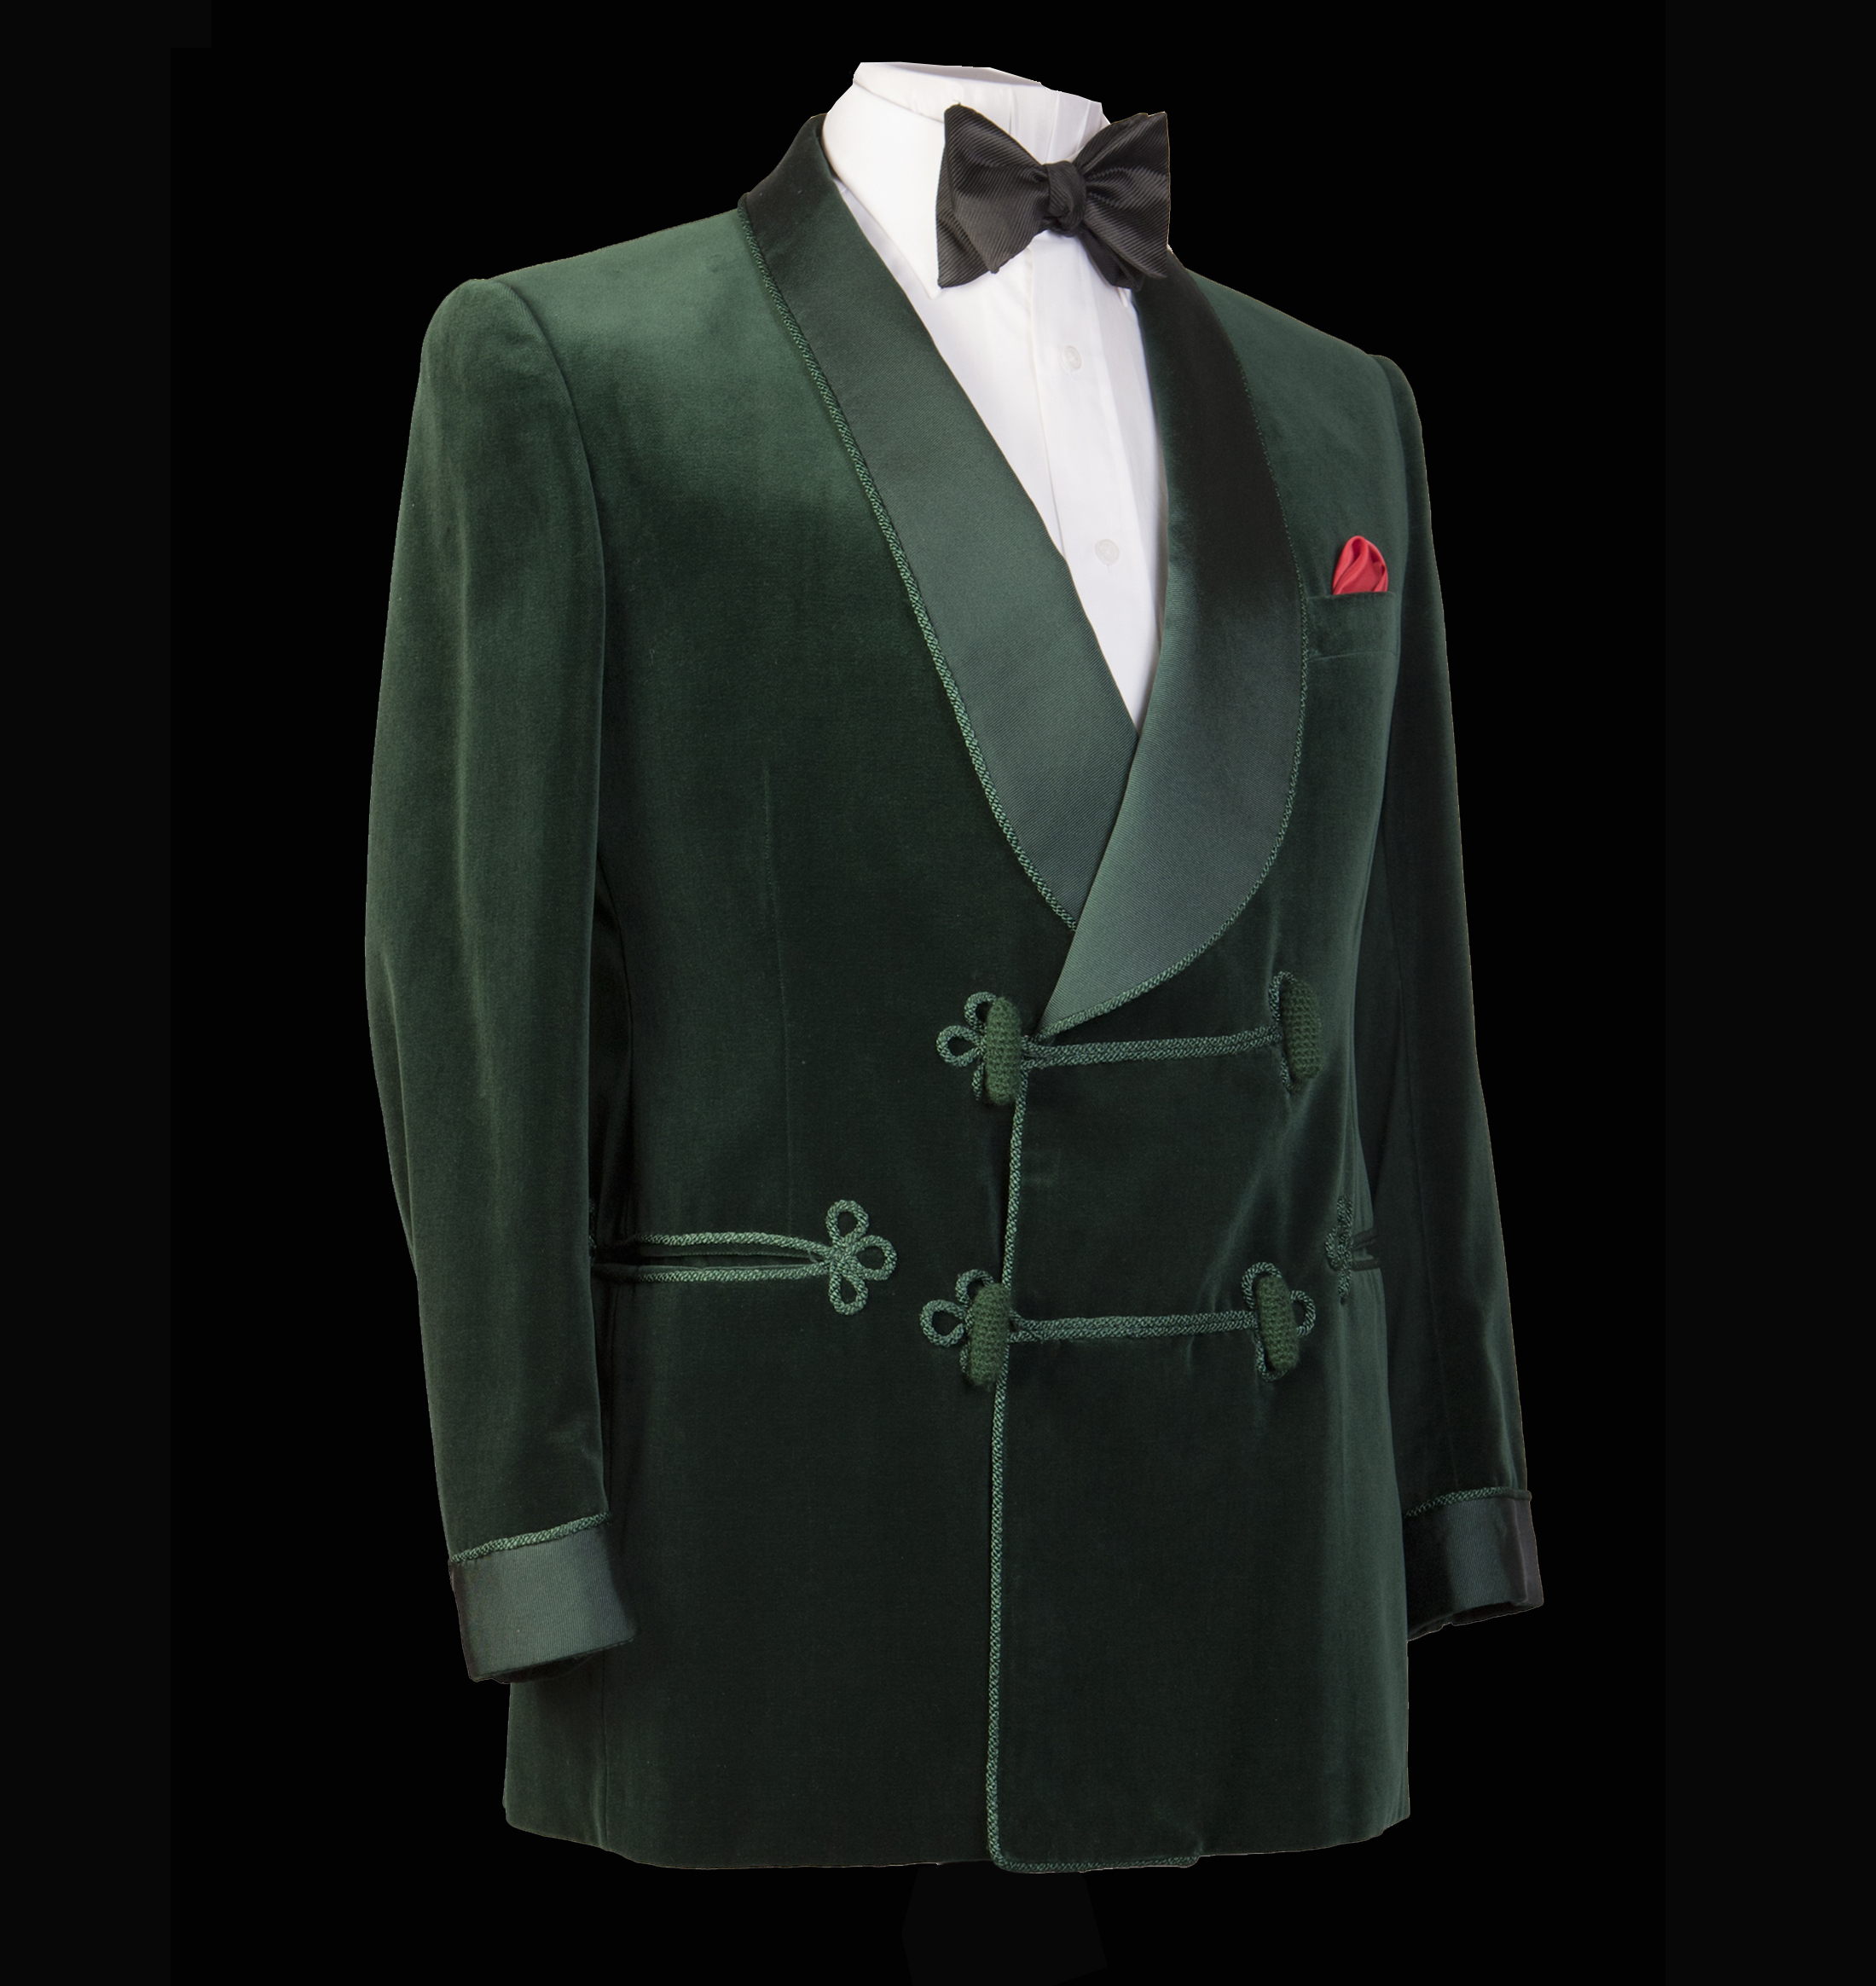 Green Velvet Bespoke Smoking Jacket with black bow tie